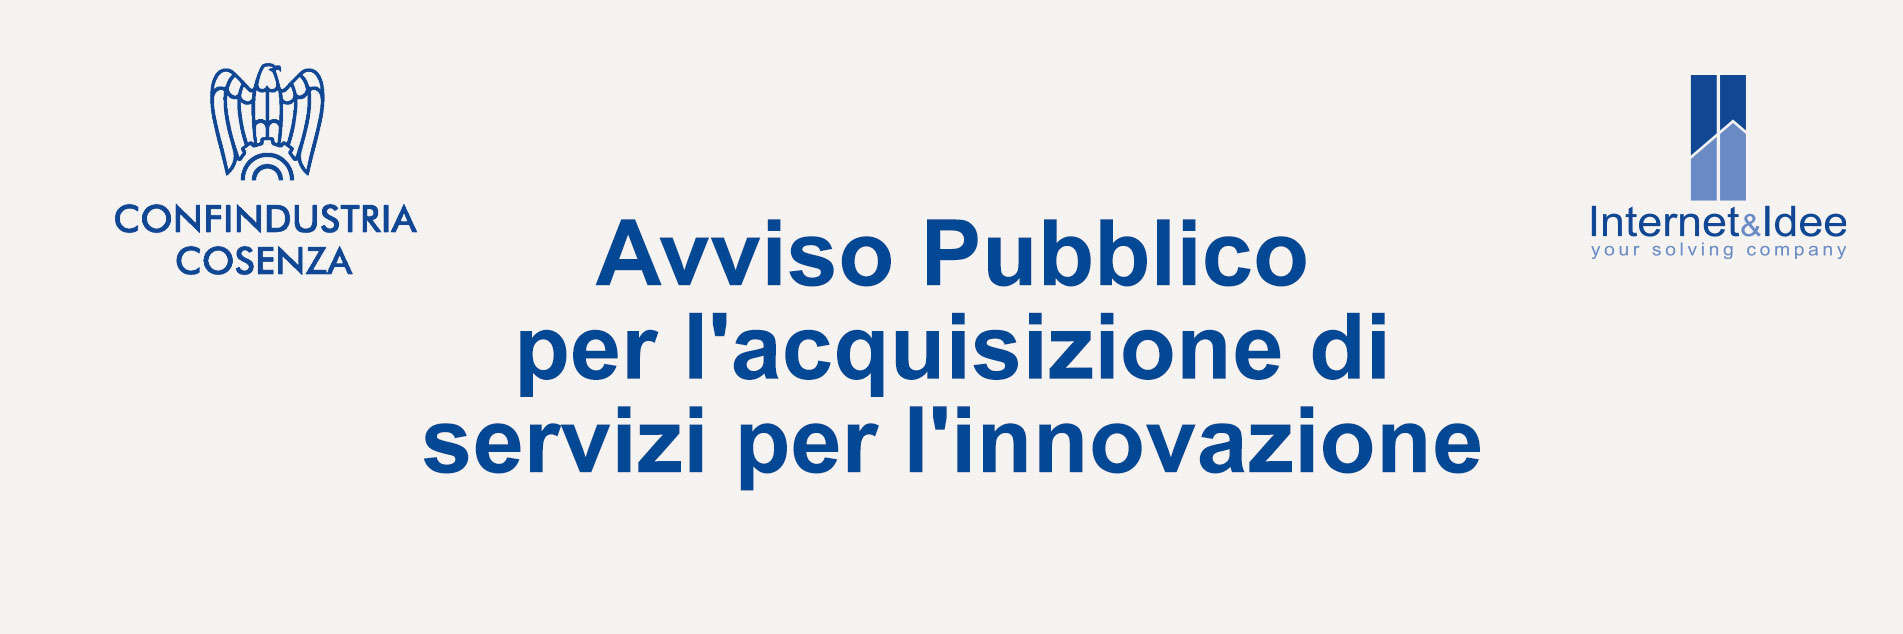 Announcement for the Acquisition of Innovation Services